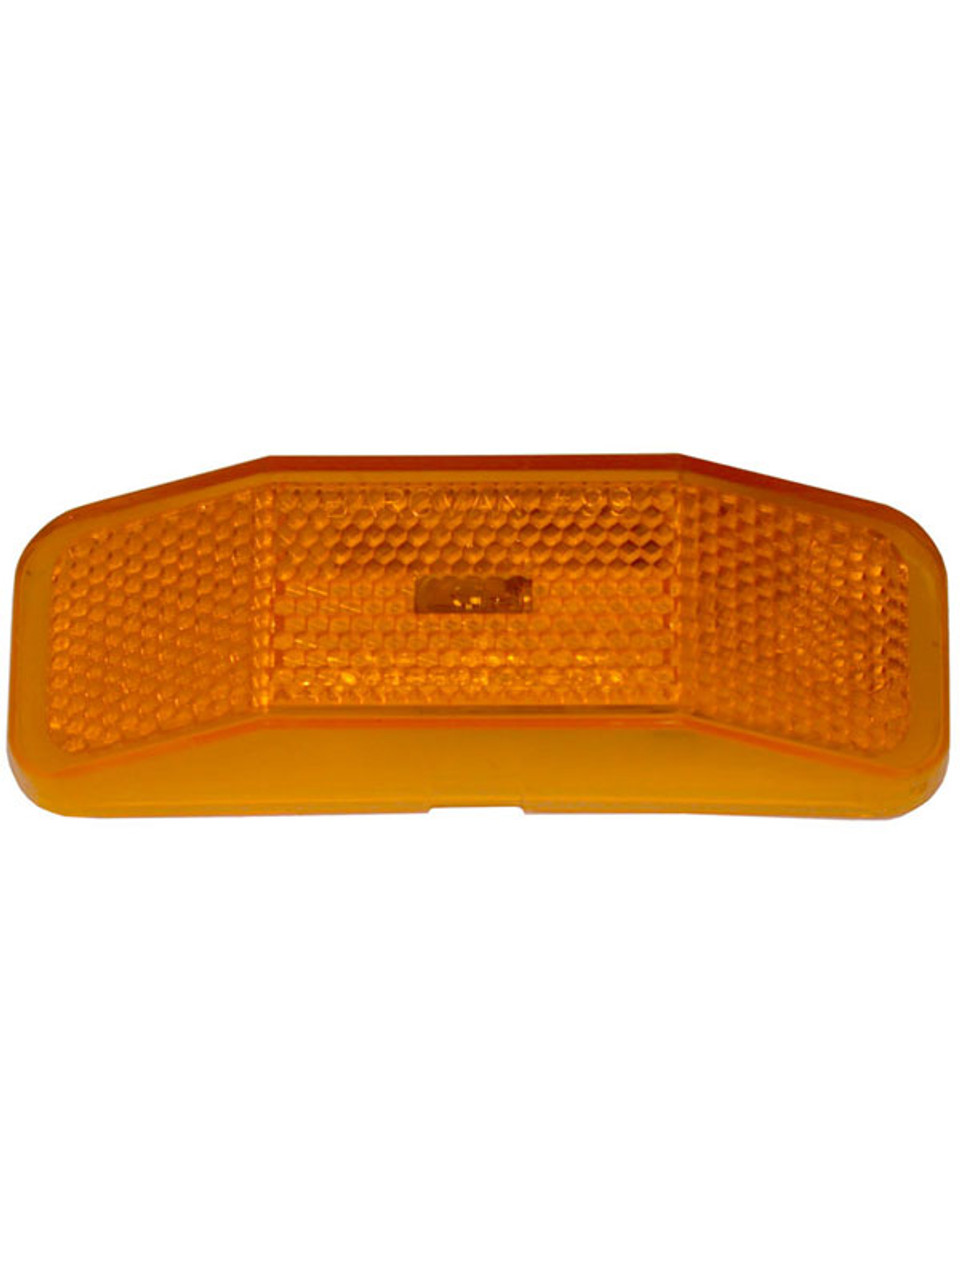 99A --- Rectangular Sealed Clearance/Side Marker Light with Reflex